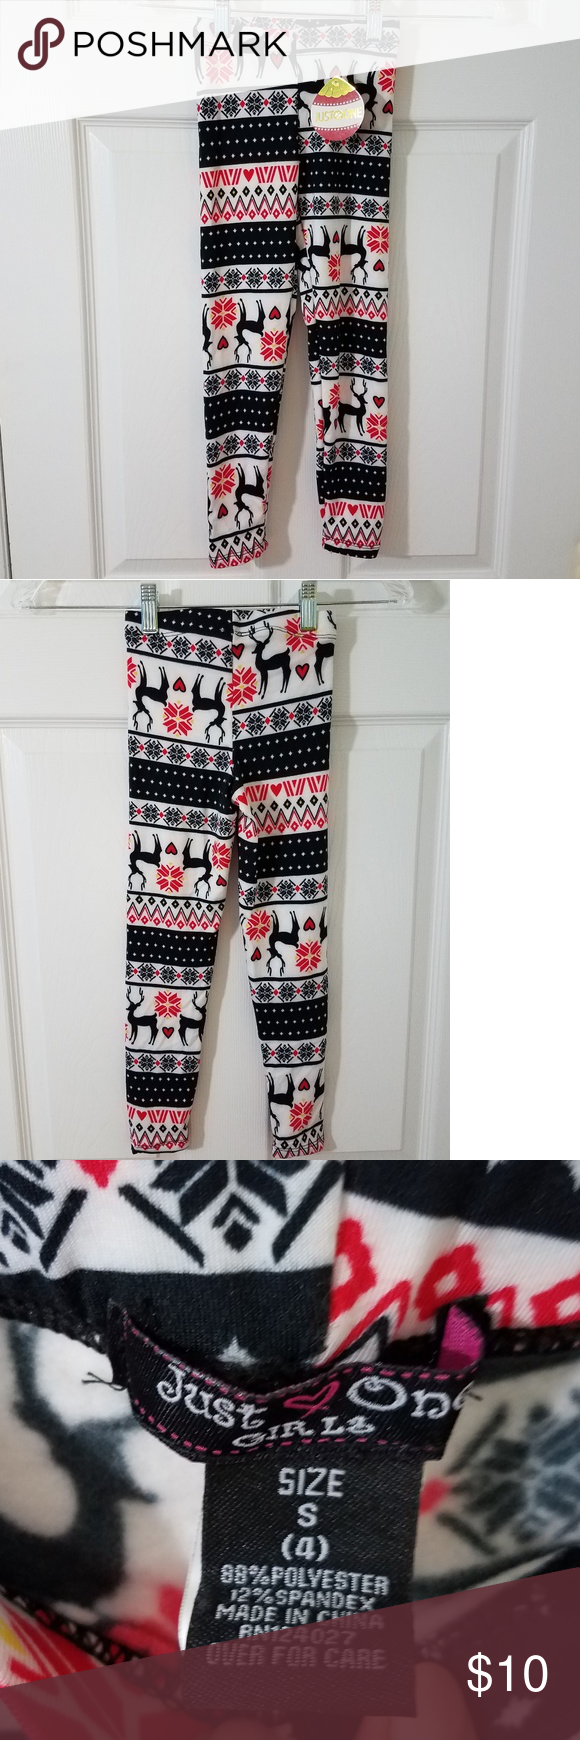 Kid's Just One Girls Holiday Leggings